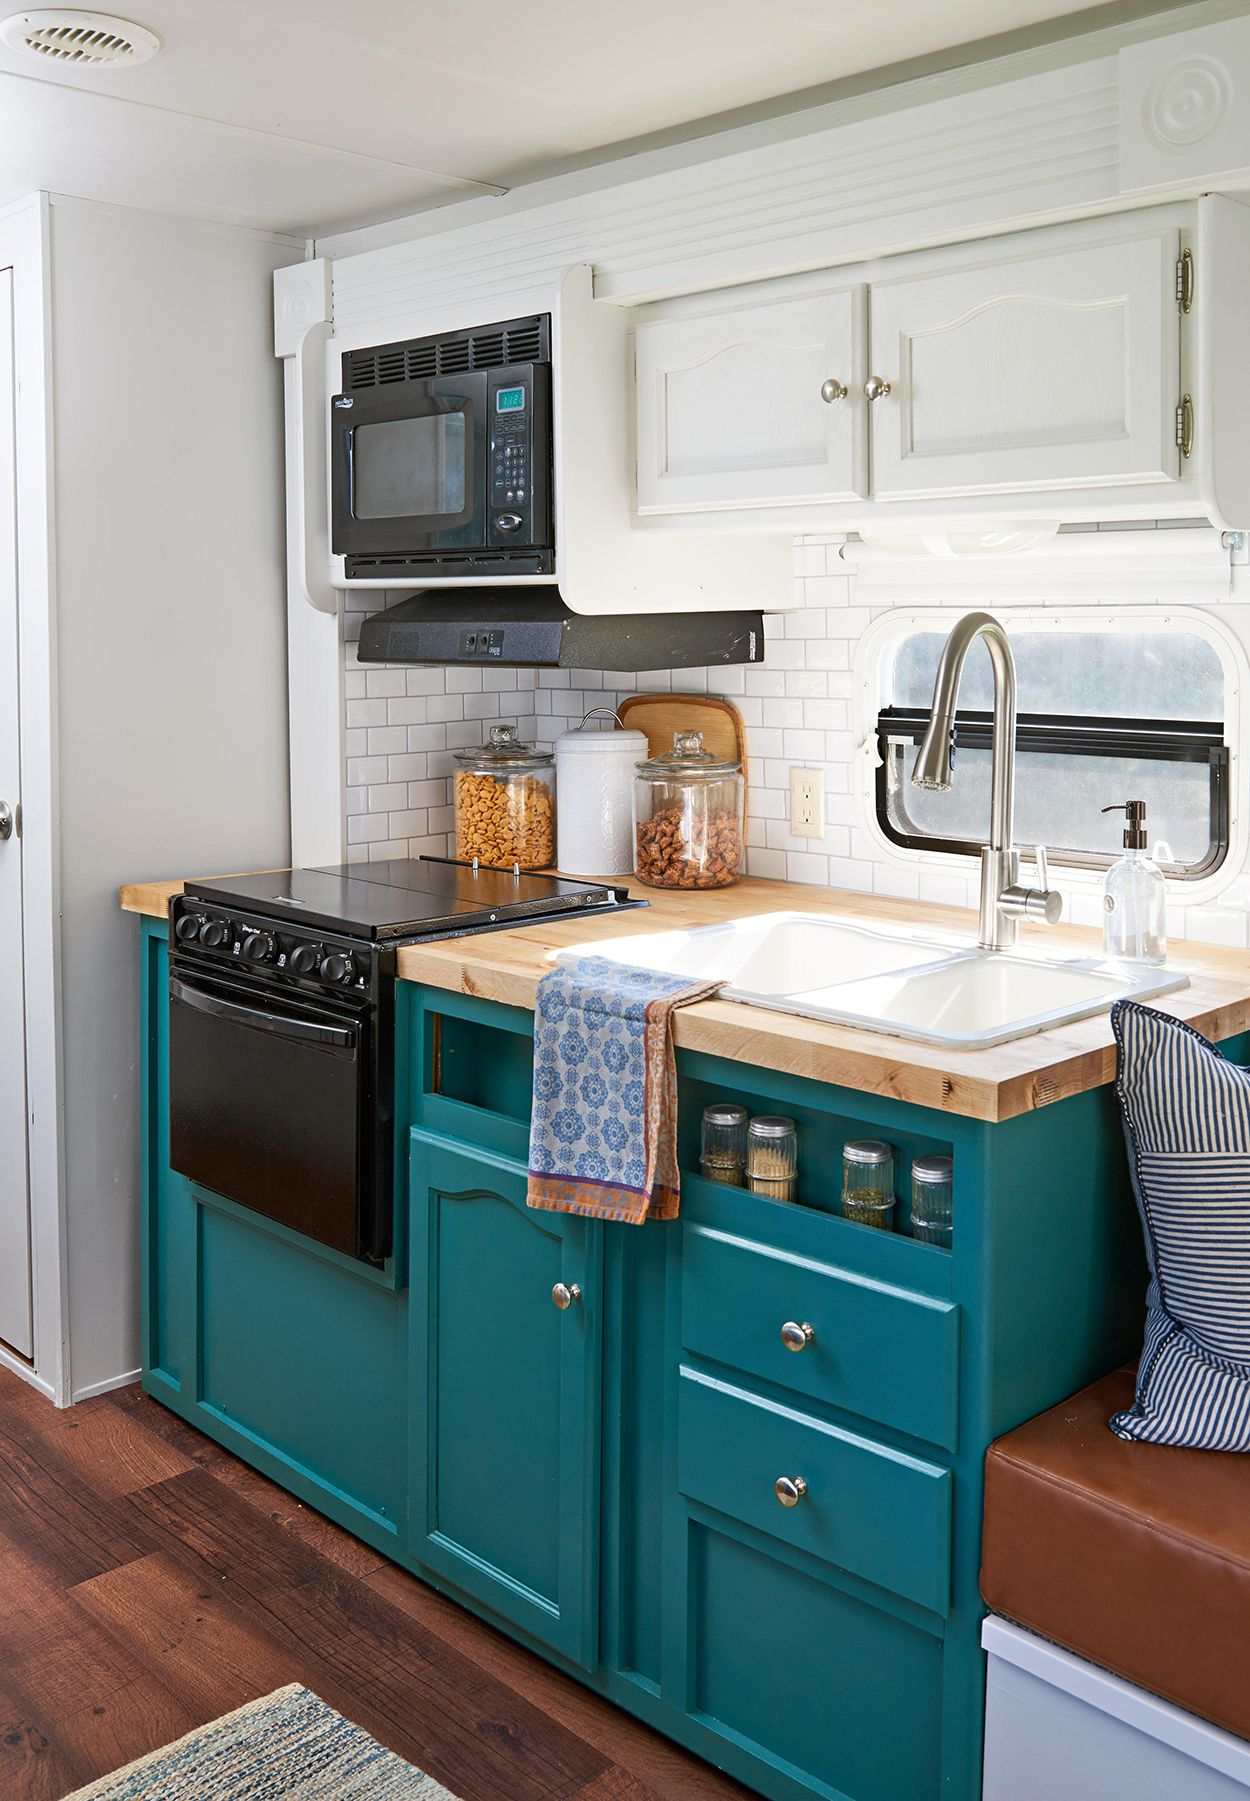 This Family Camper Became An Amazing Tiny Home Kitchen